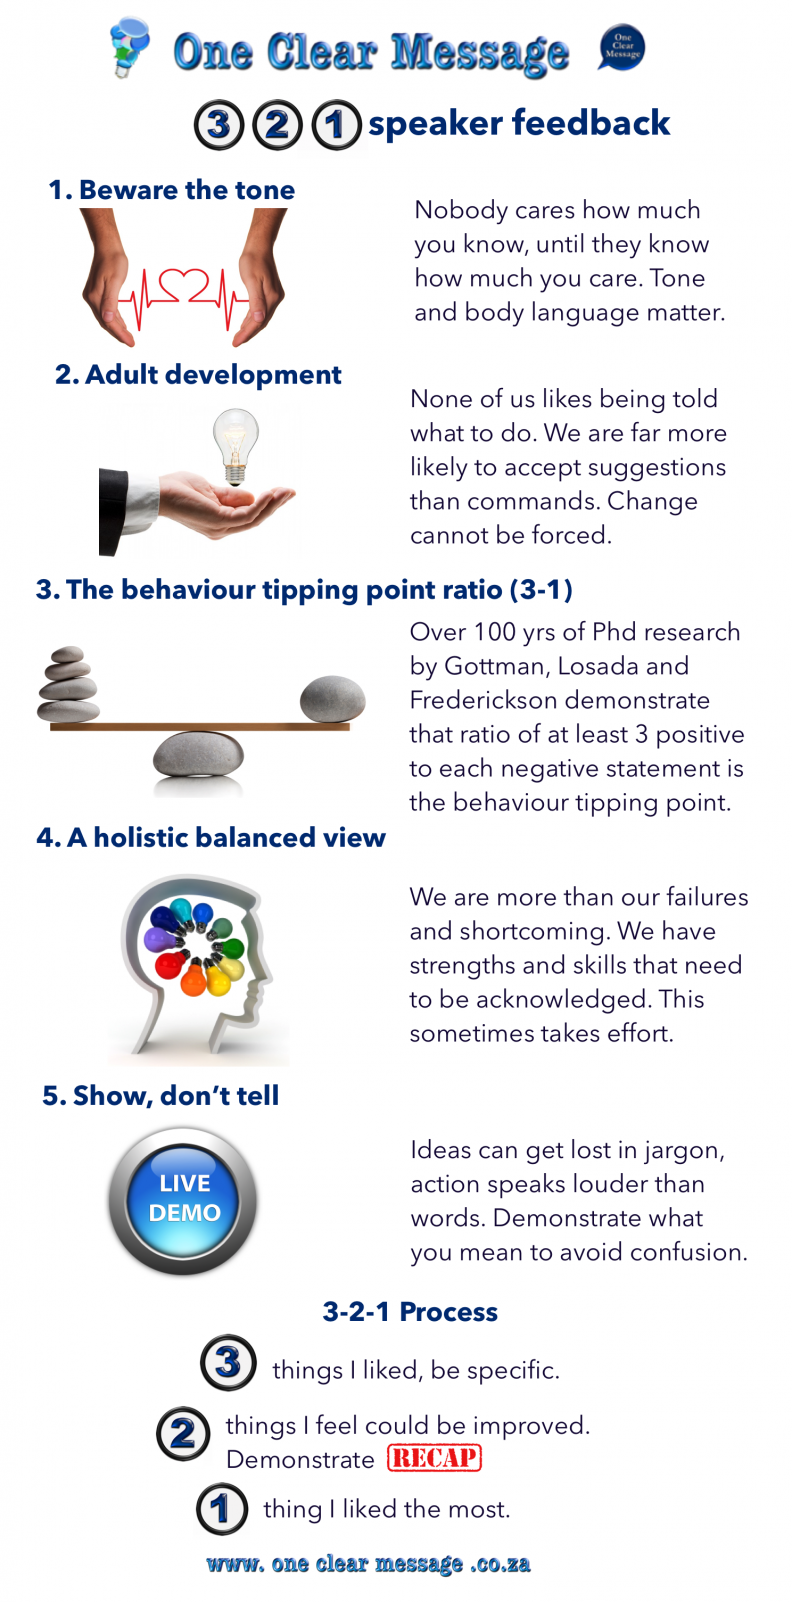 One Clear Message 321 feedback Infographic